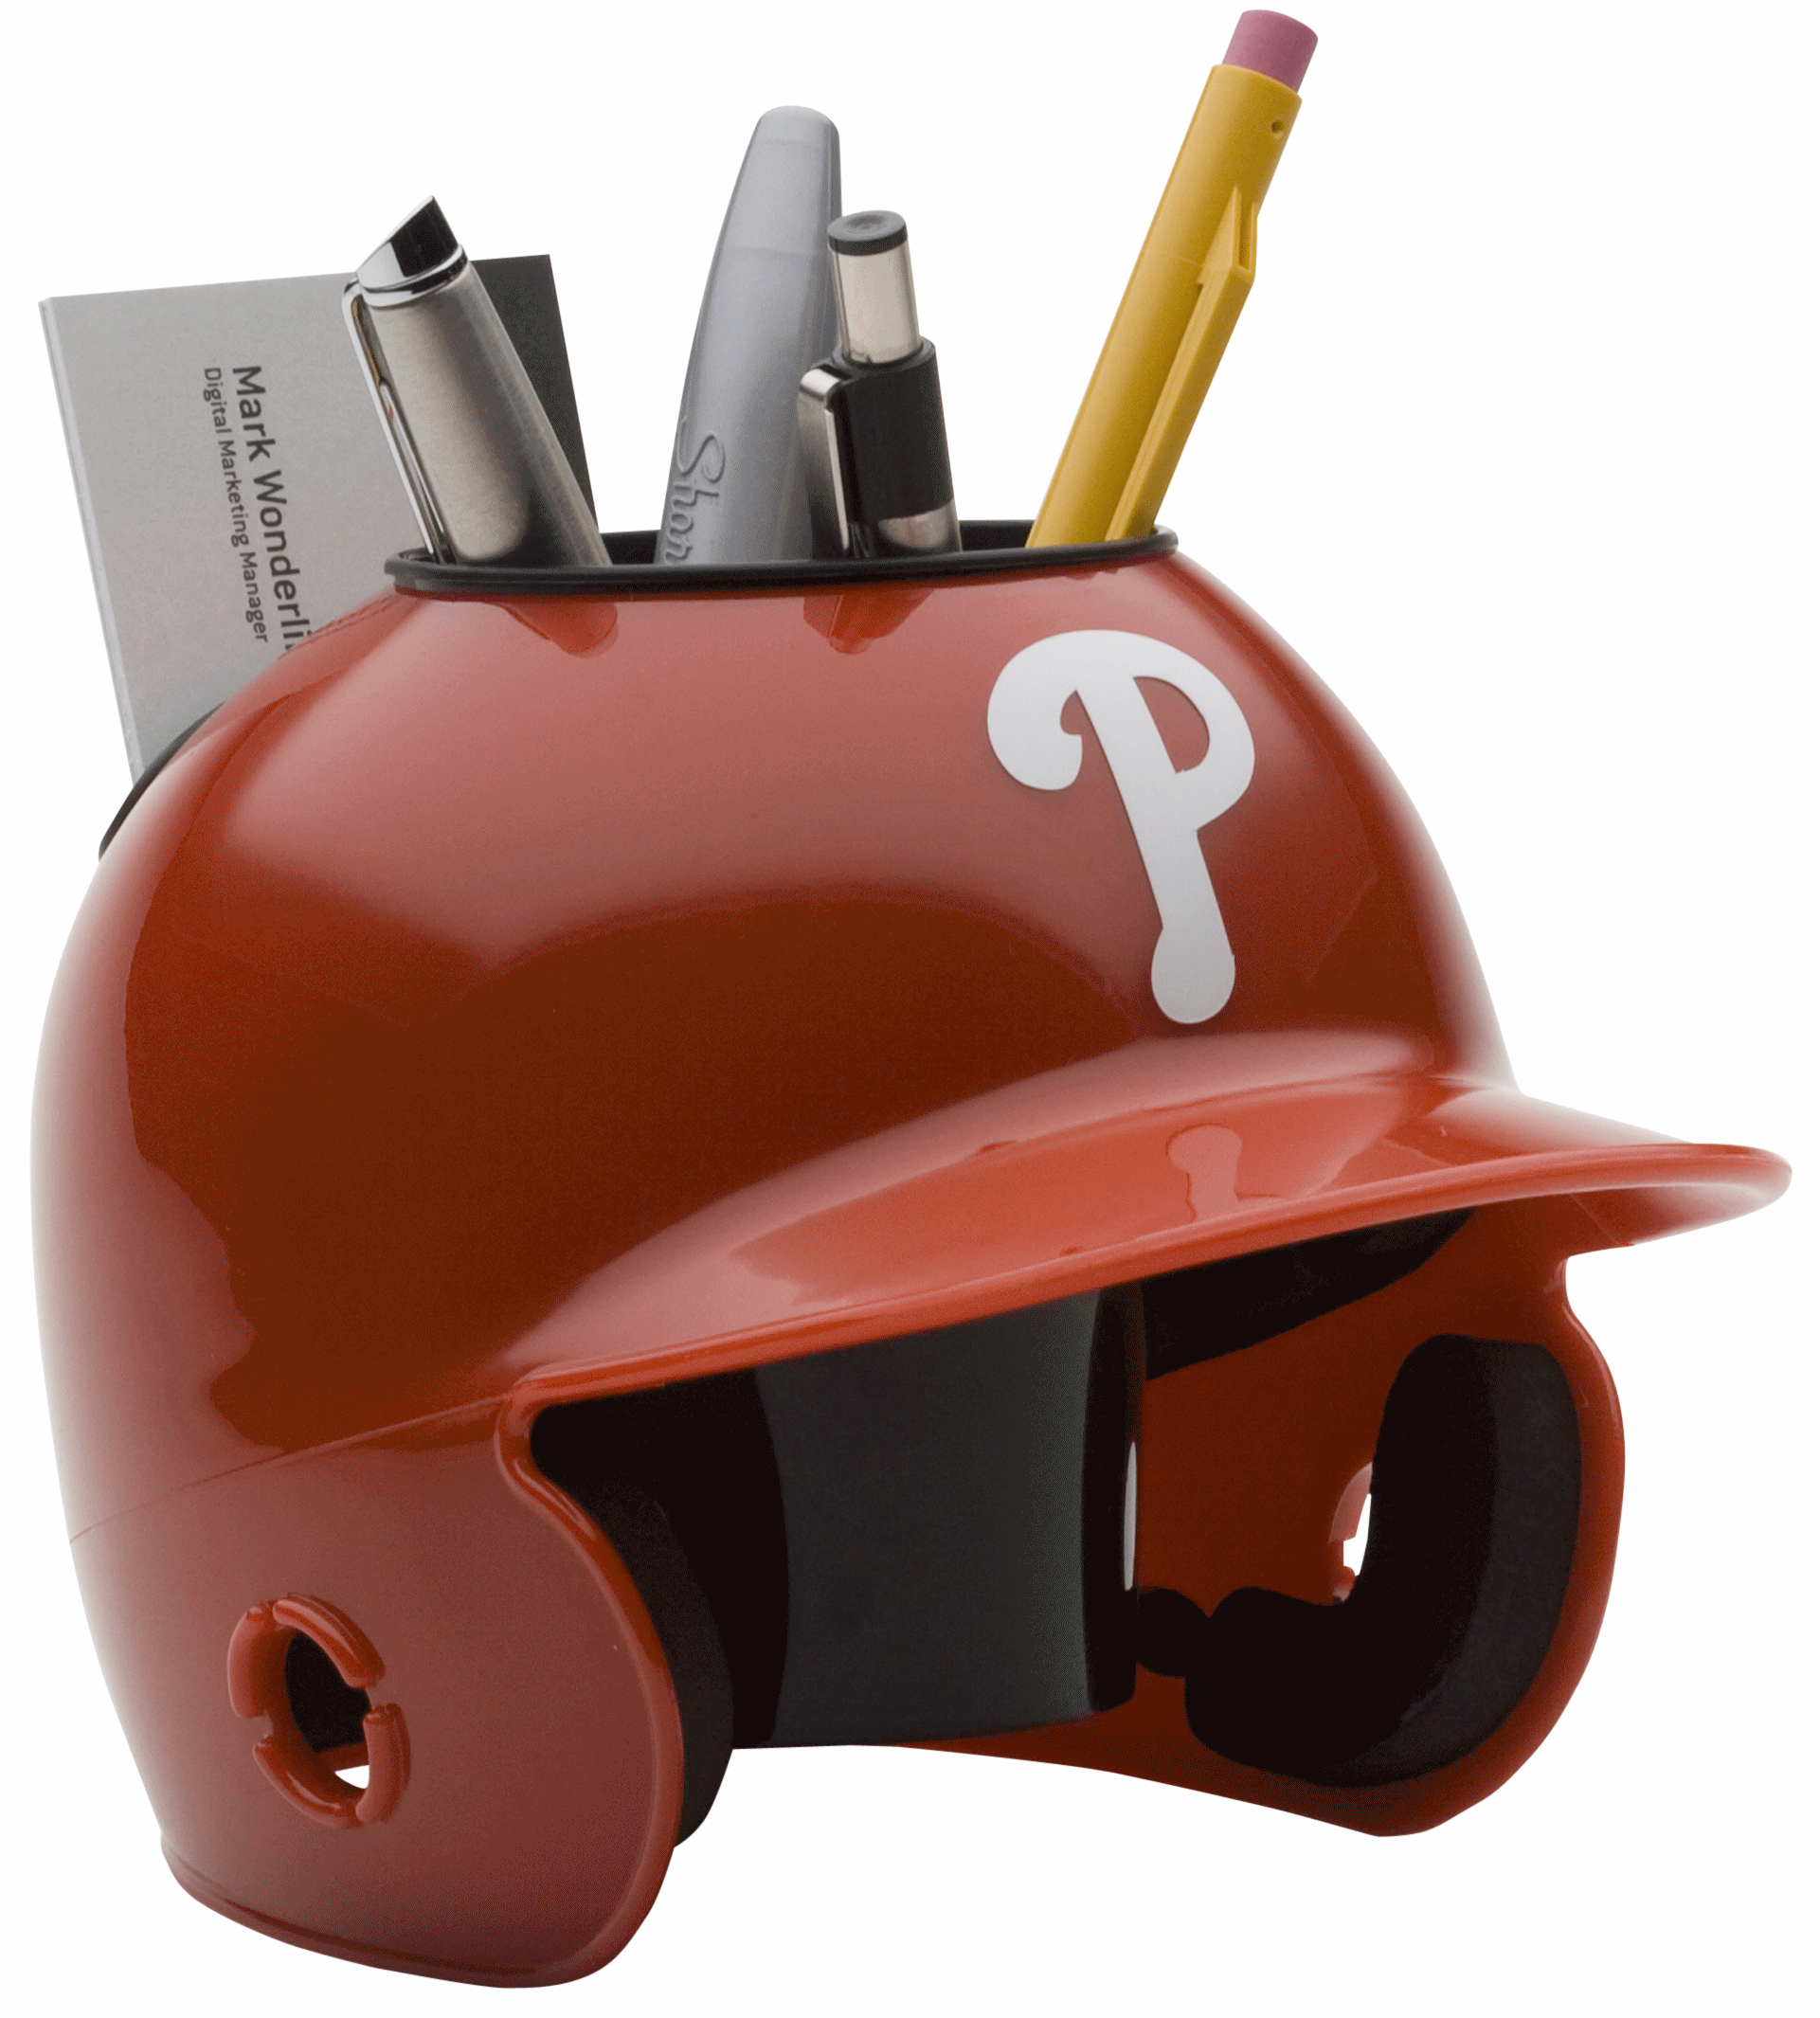 Philadelphia Phillies Miniature Batters Helmet Desk Caddy